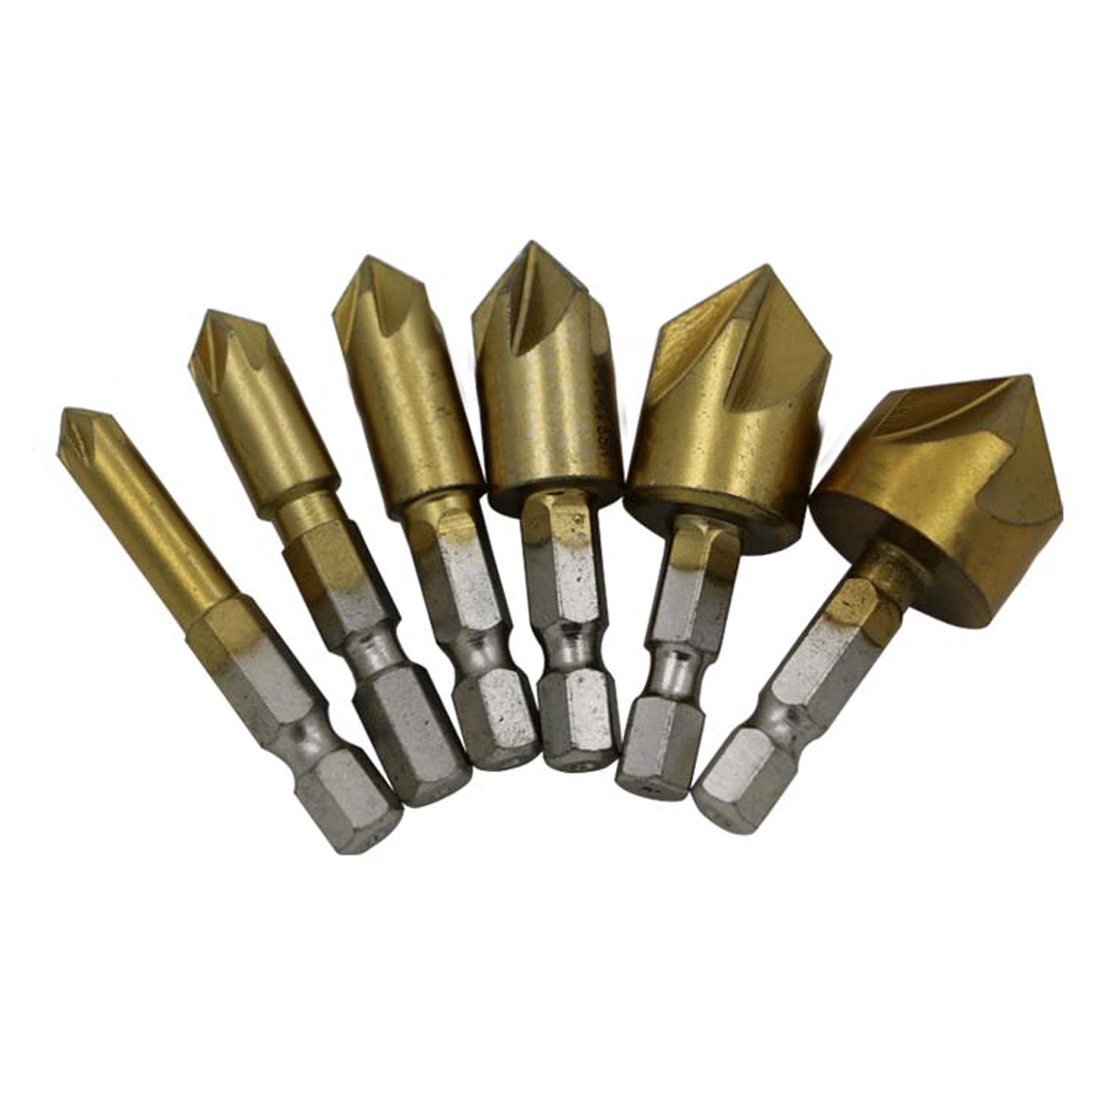 5 Flute Chamfer Countersink 6PCS 6mm-19mm Countersink Drill Bit 1/4 Hex Shank 90 Degree Wood Chamfering Cutter drill guide countersink drill bit 6 pcs 5 flute chamfer countersink 1 4 hex shank hss 90 degree wood chamfering cutter chamfer 6mm 19mm